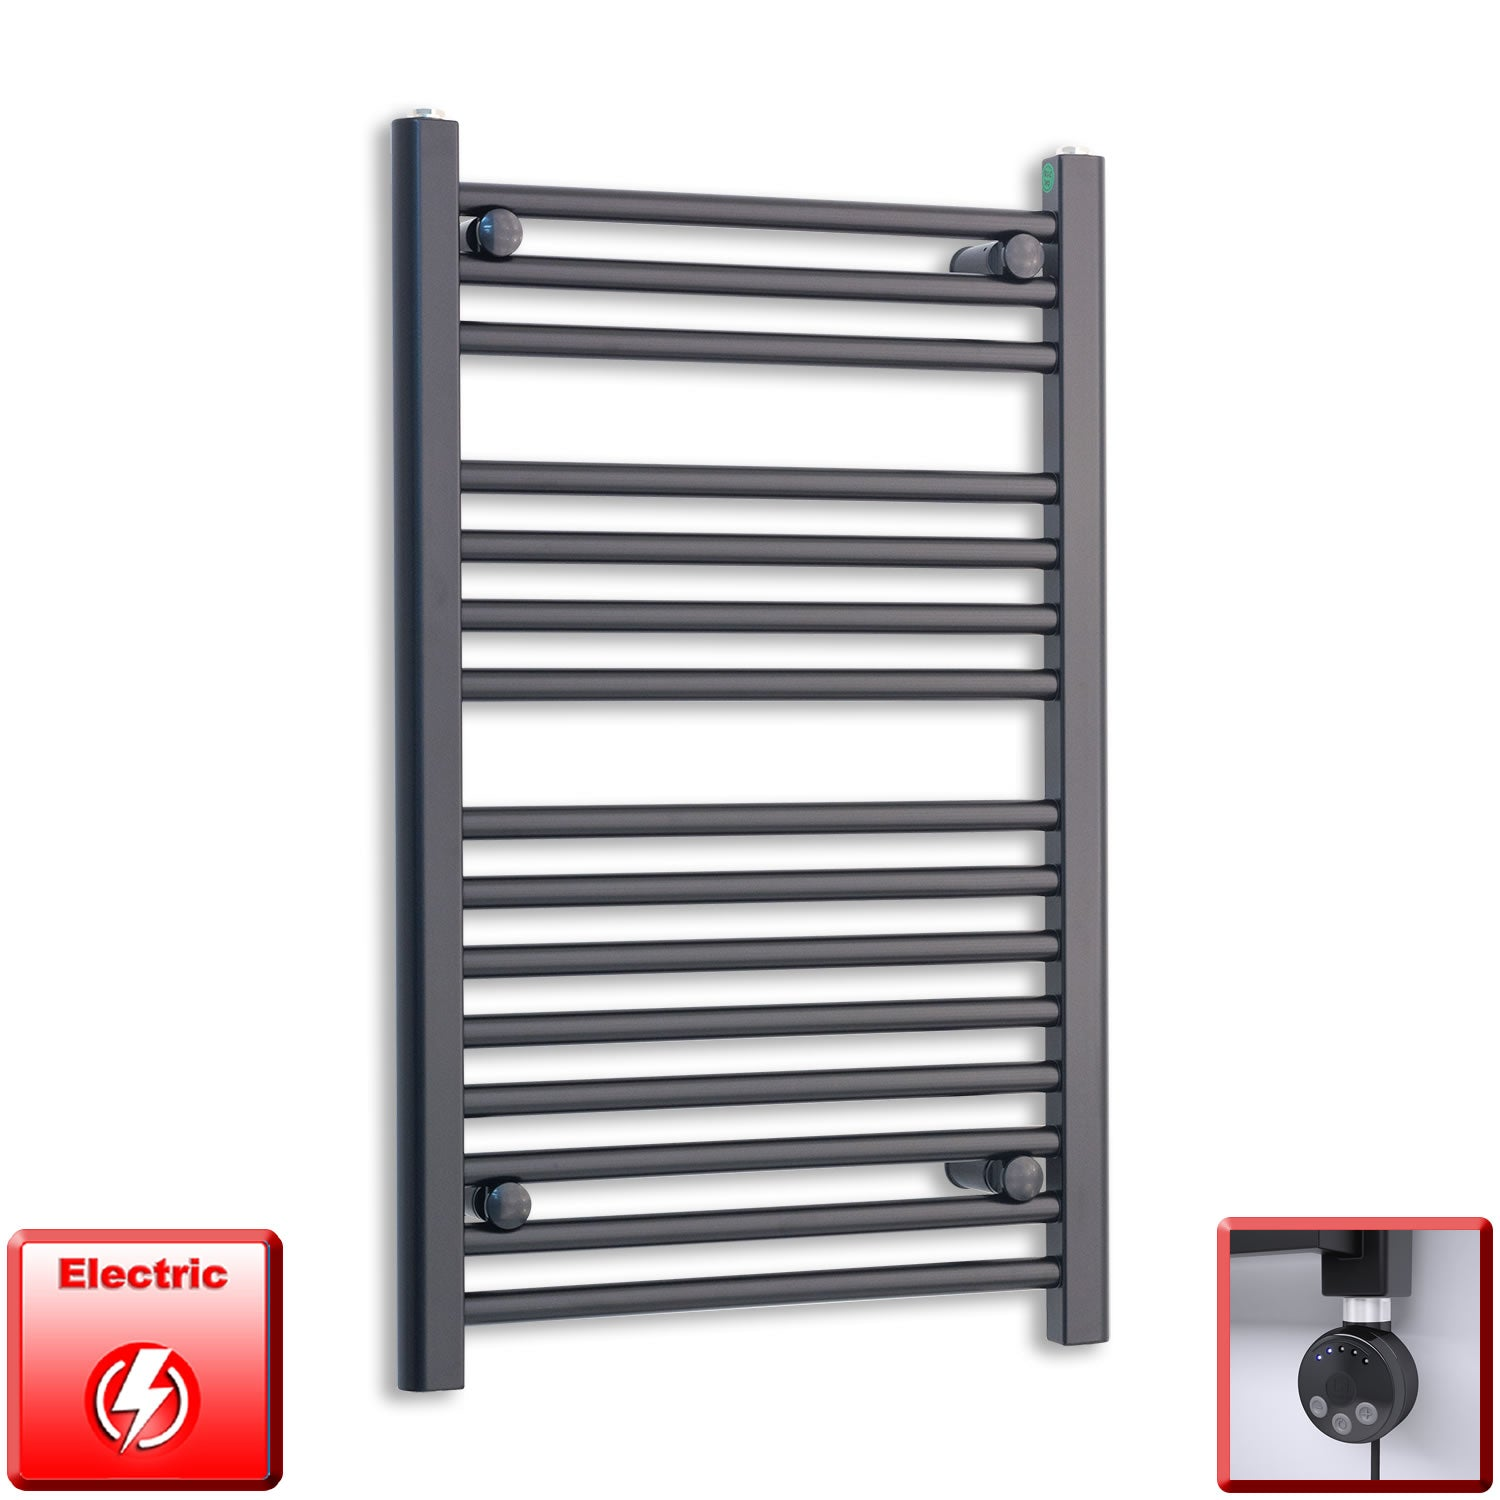 600mm Wide 800mm High Pre-Filled Black Electric Towel Rail Radiator With Thermostatic MEG Element